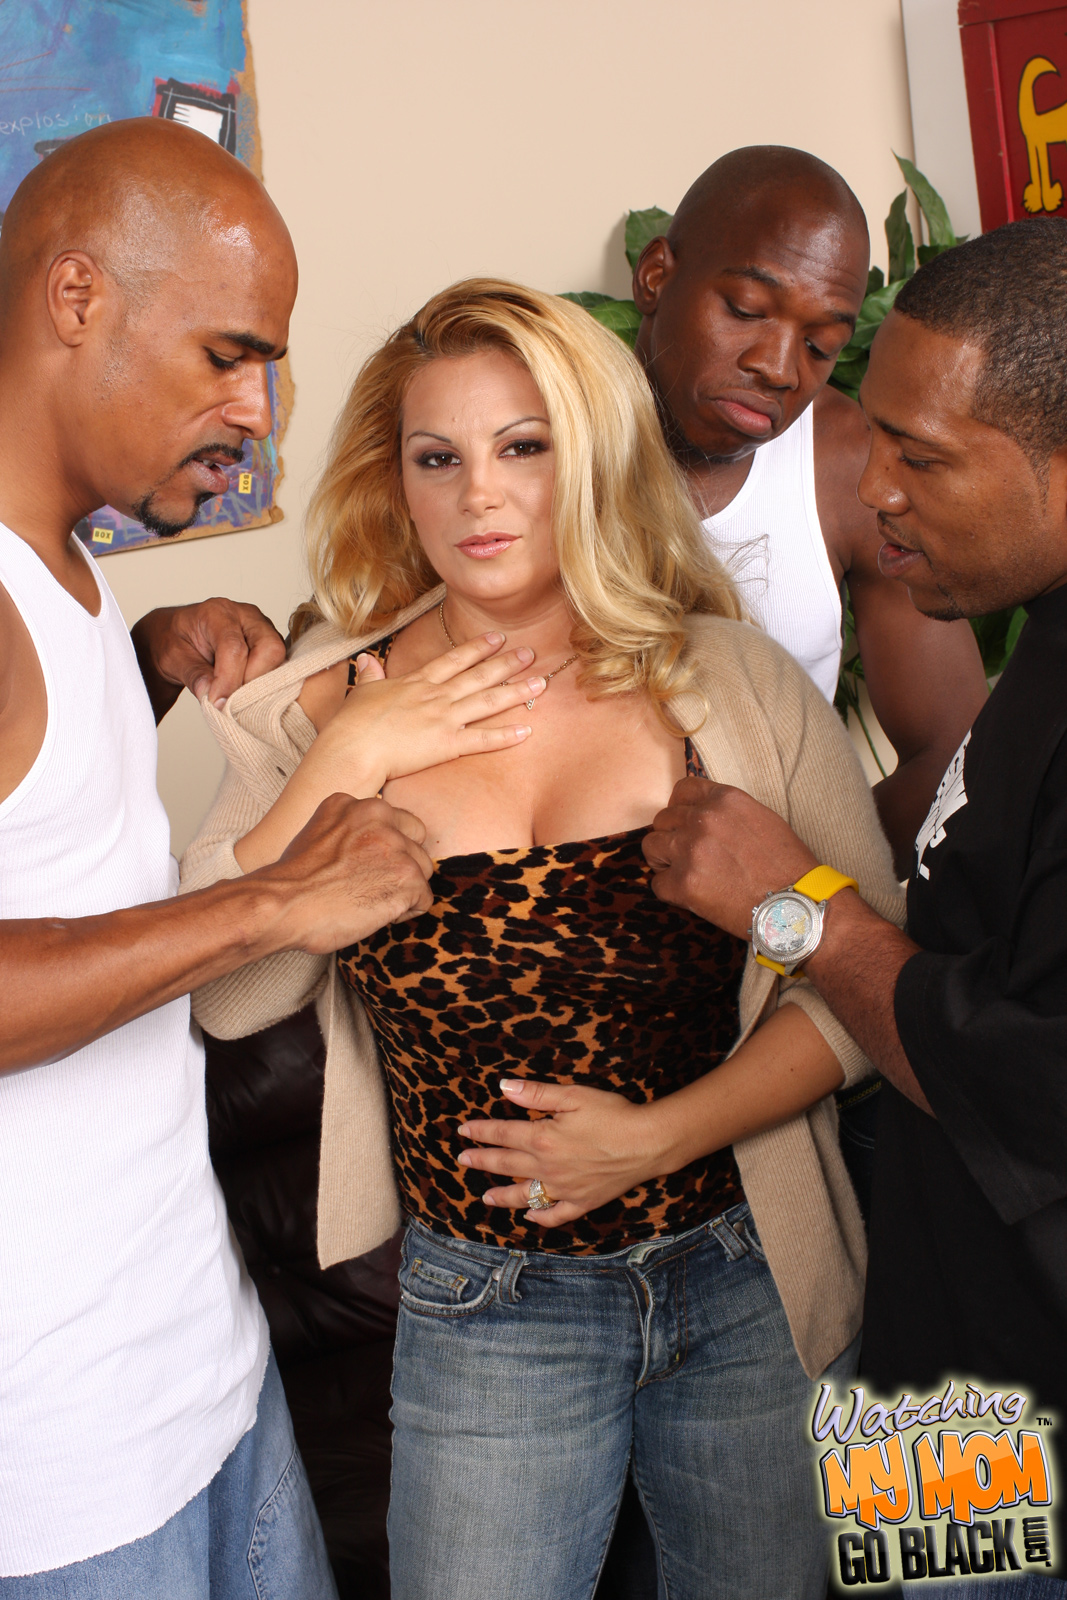 Busty mother sara jay fucked by several black not her sons - 1 part 4